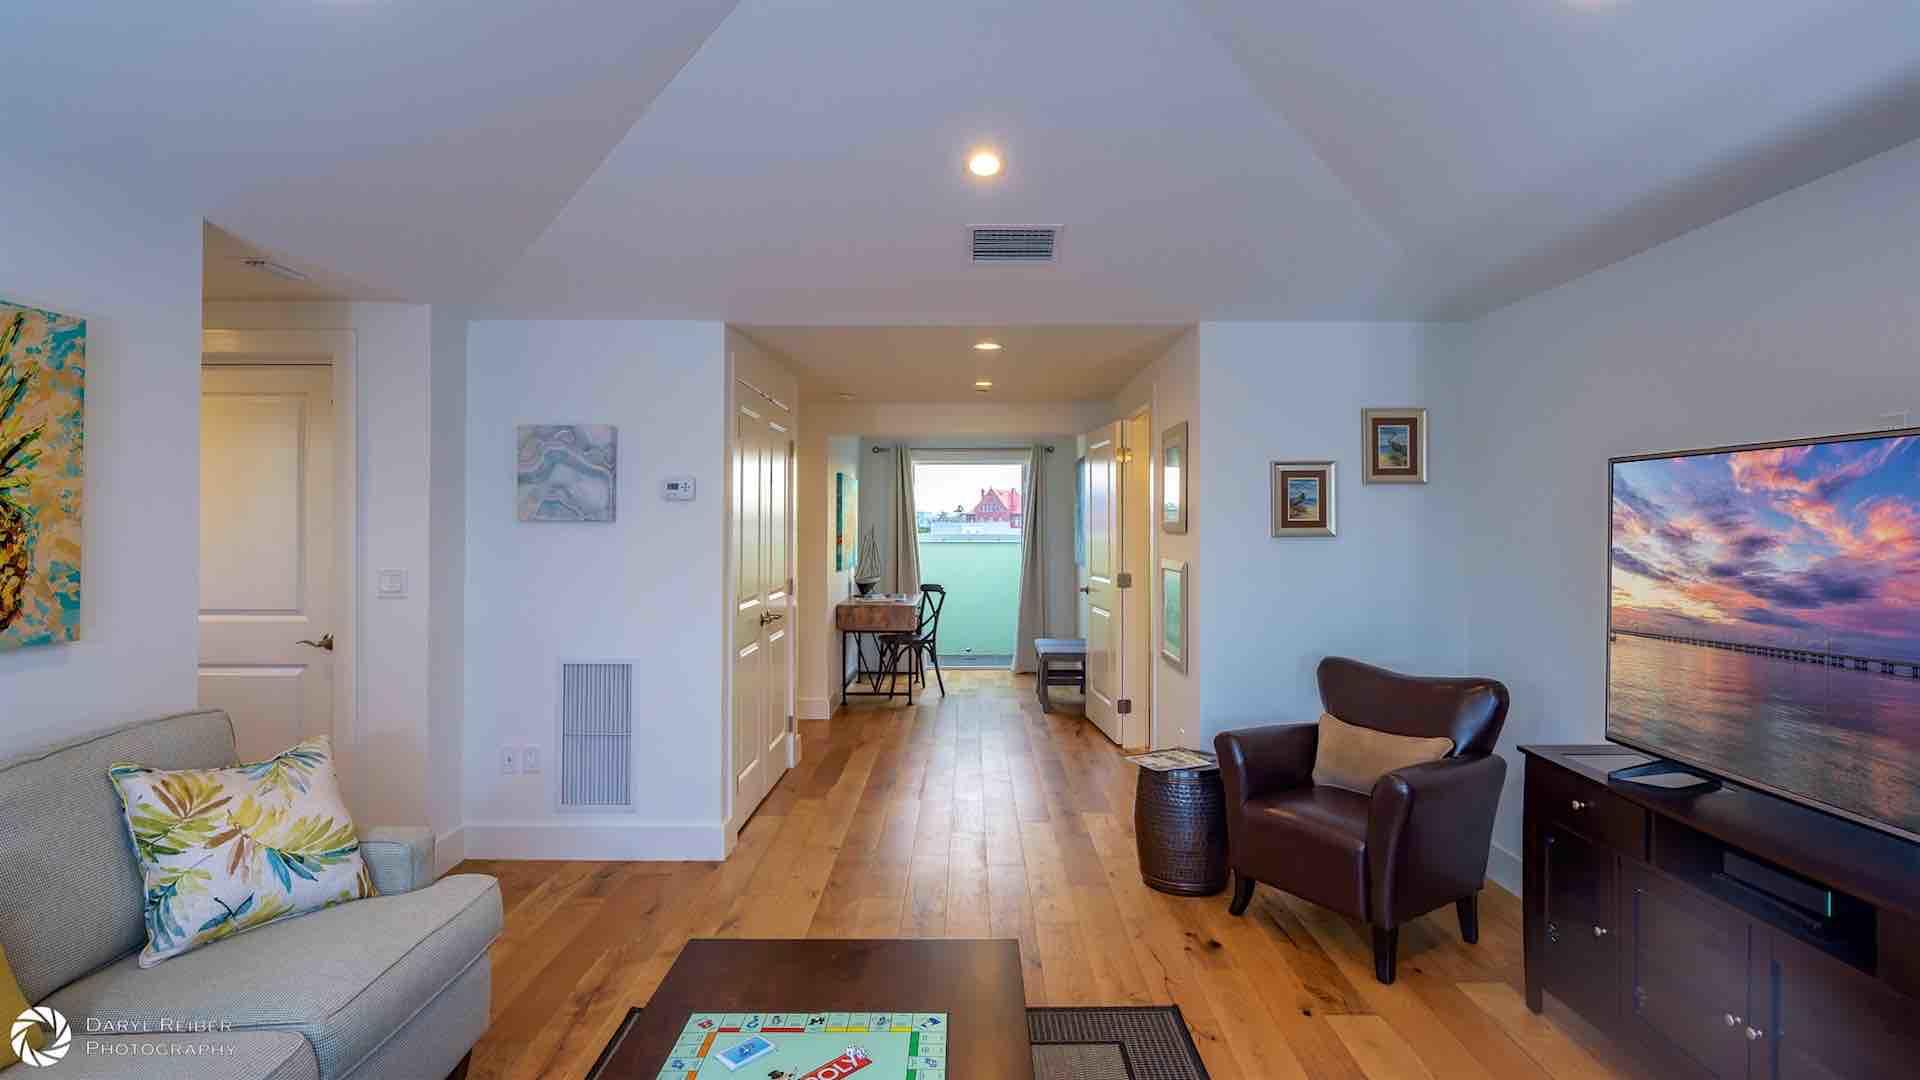 The fourth floor living room has 9 foot high ceilings and plenty of space for everyone in your group...